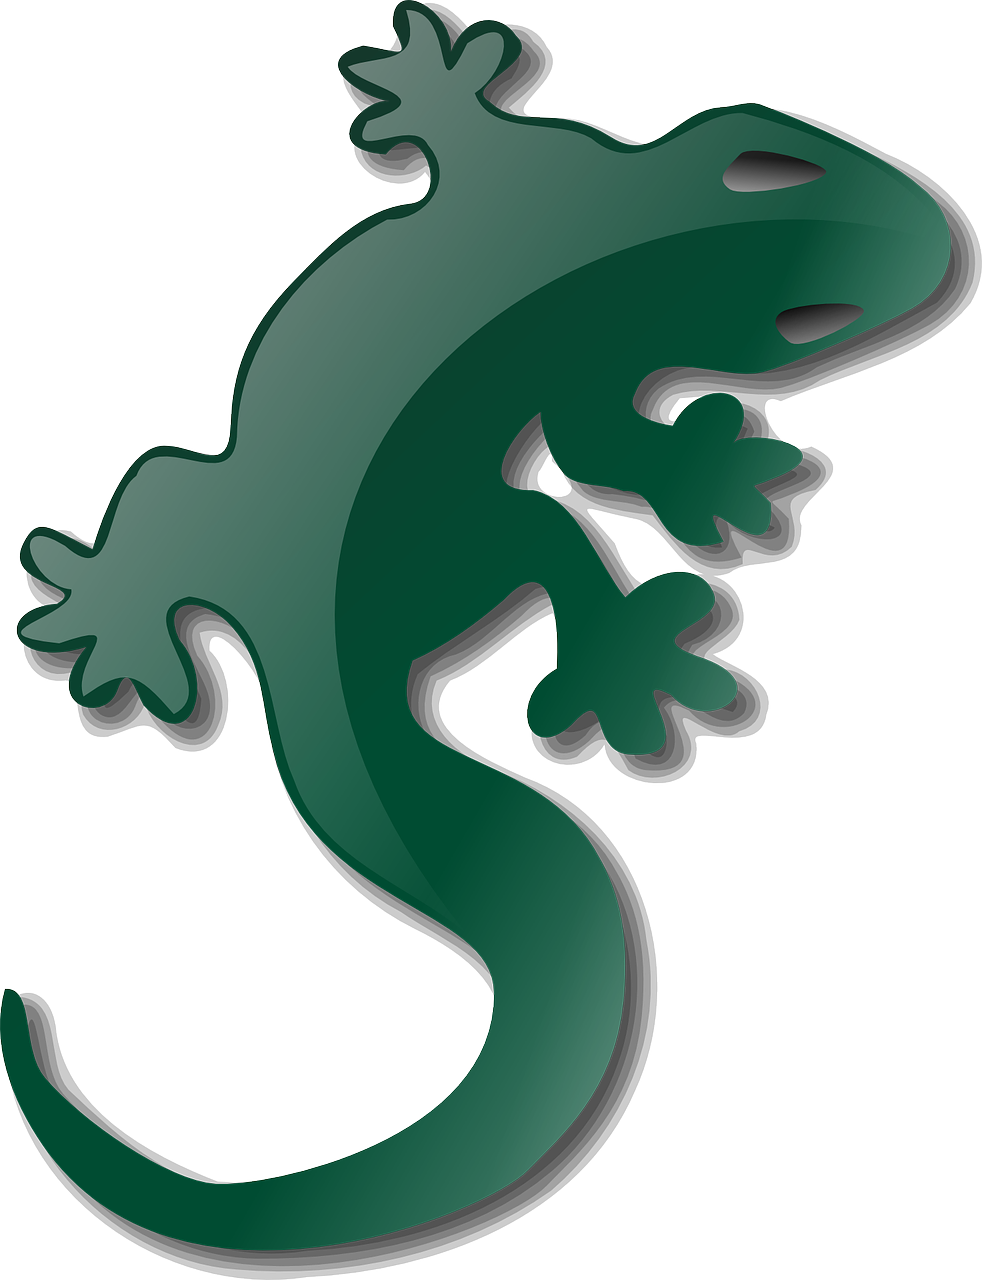 image royalty free stock Gecko vector head. Lizard reptile nature wildlife